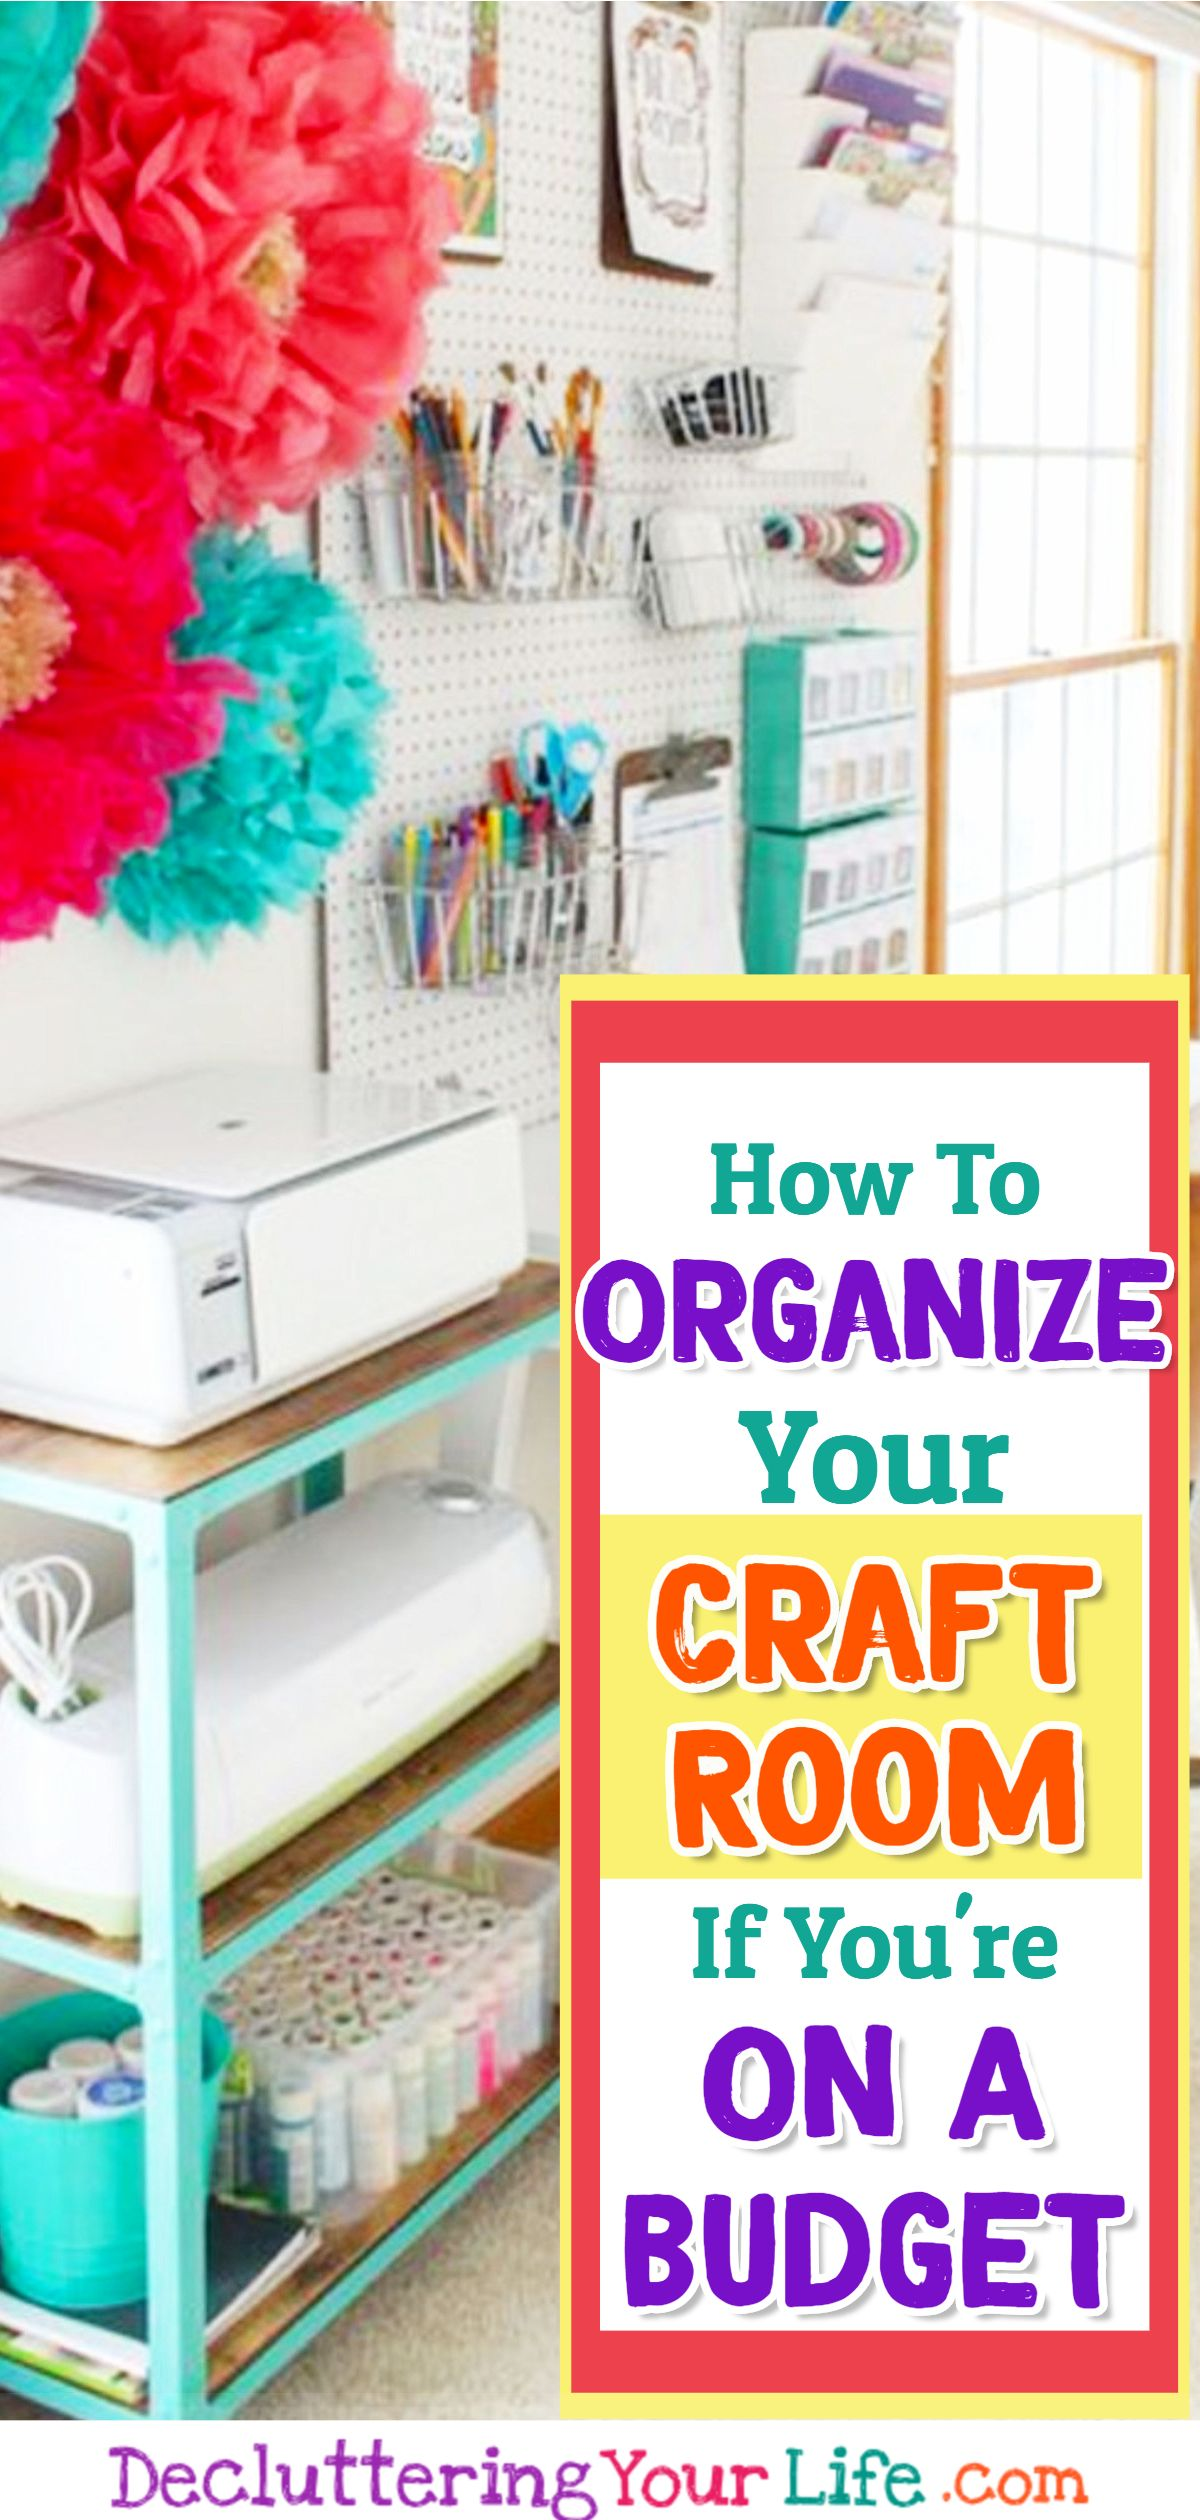 DIY Craftroom Organization - Unexpected & Creative Ways to Organize Your Craft Room on a Budget images